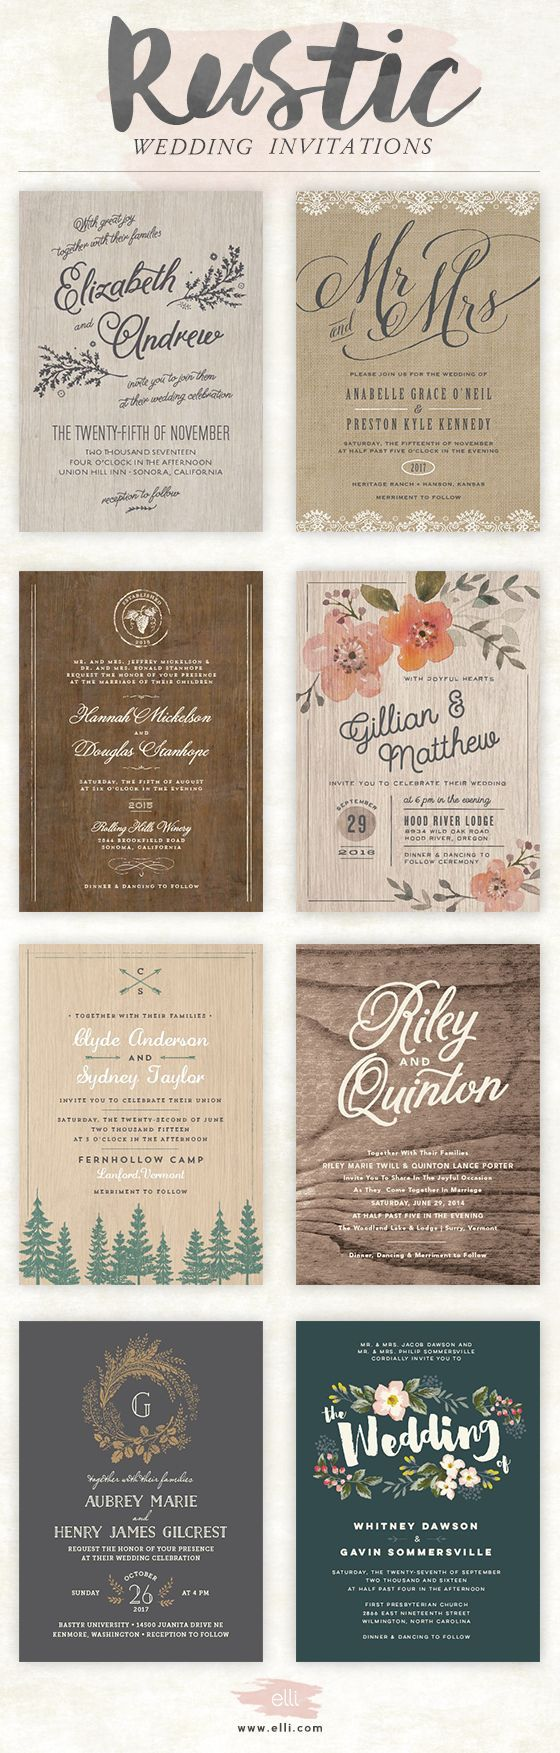 printable bridal registry list%0A Rustic wedding invitations   bellacollina com   Bella Collina Weddings